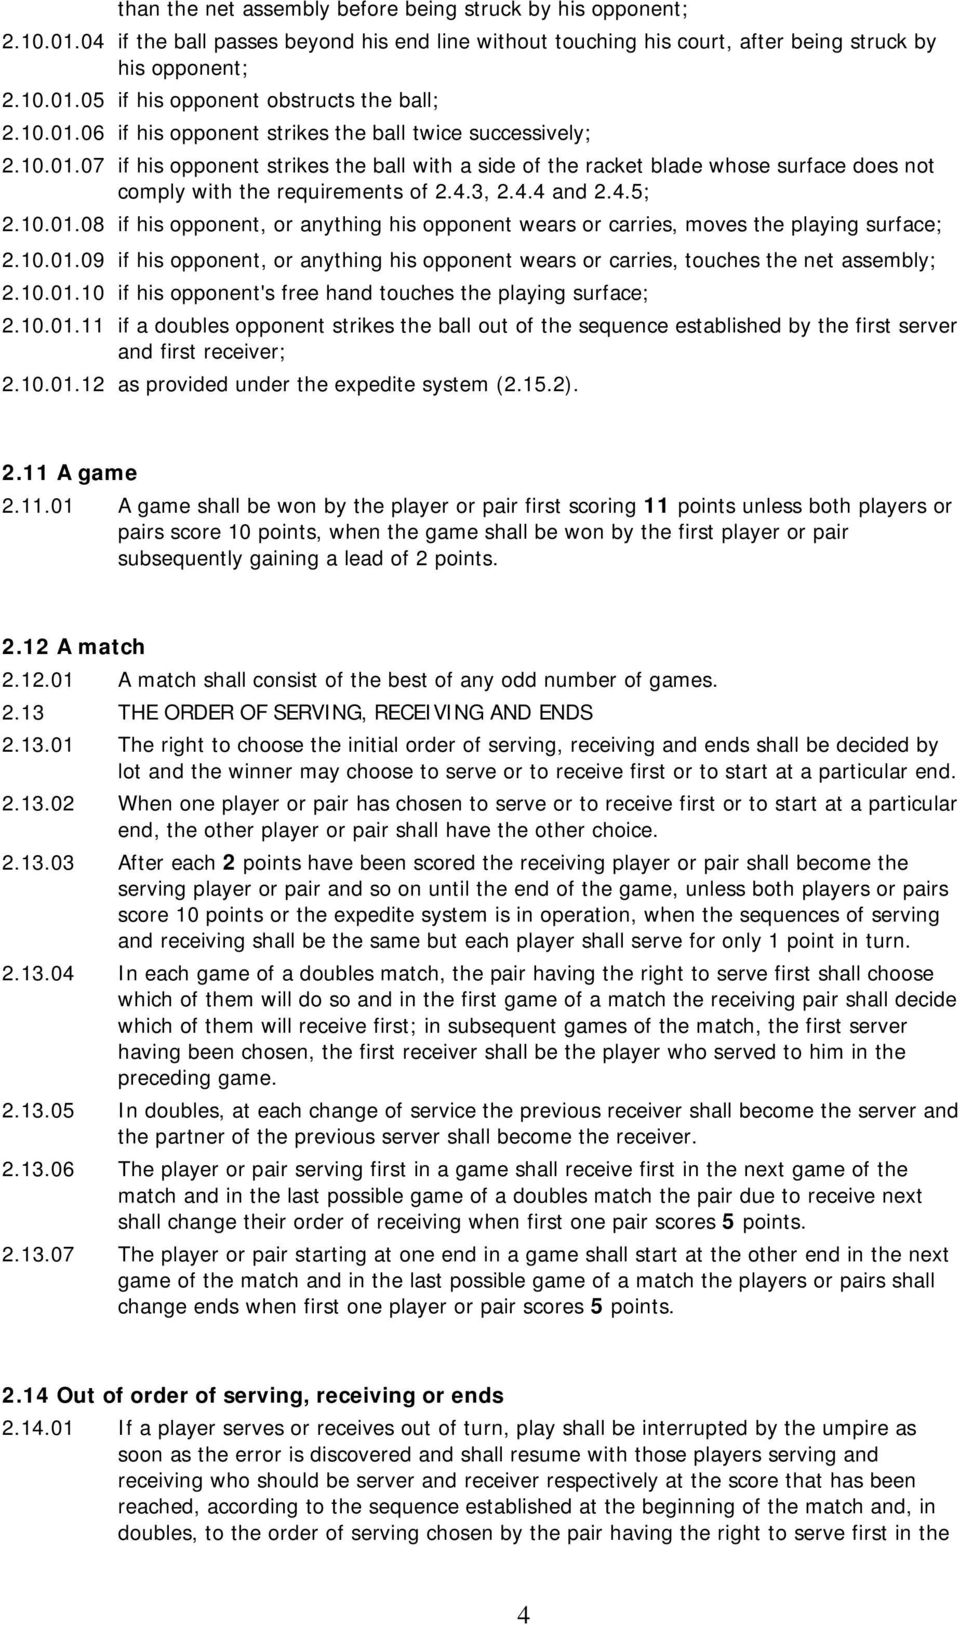 General rules for table tennis pdf for 10 rules of table tennis